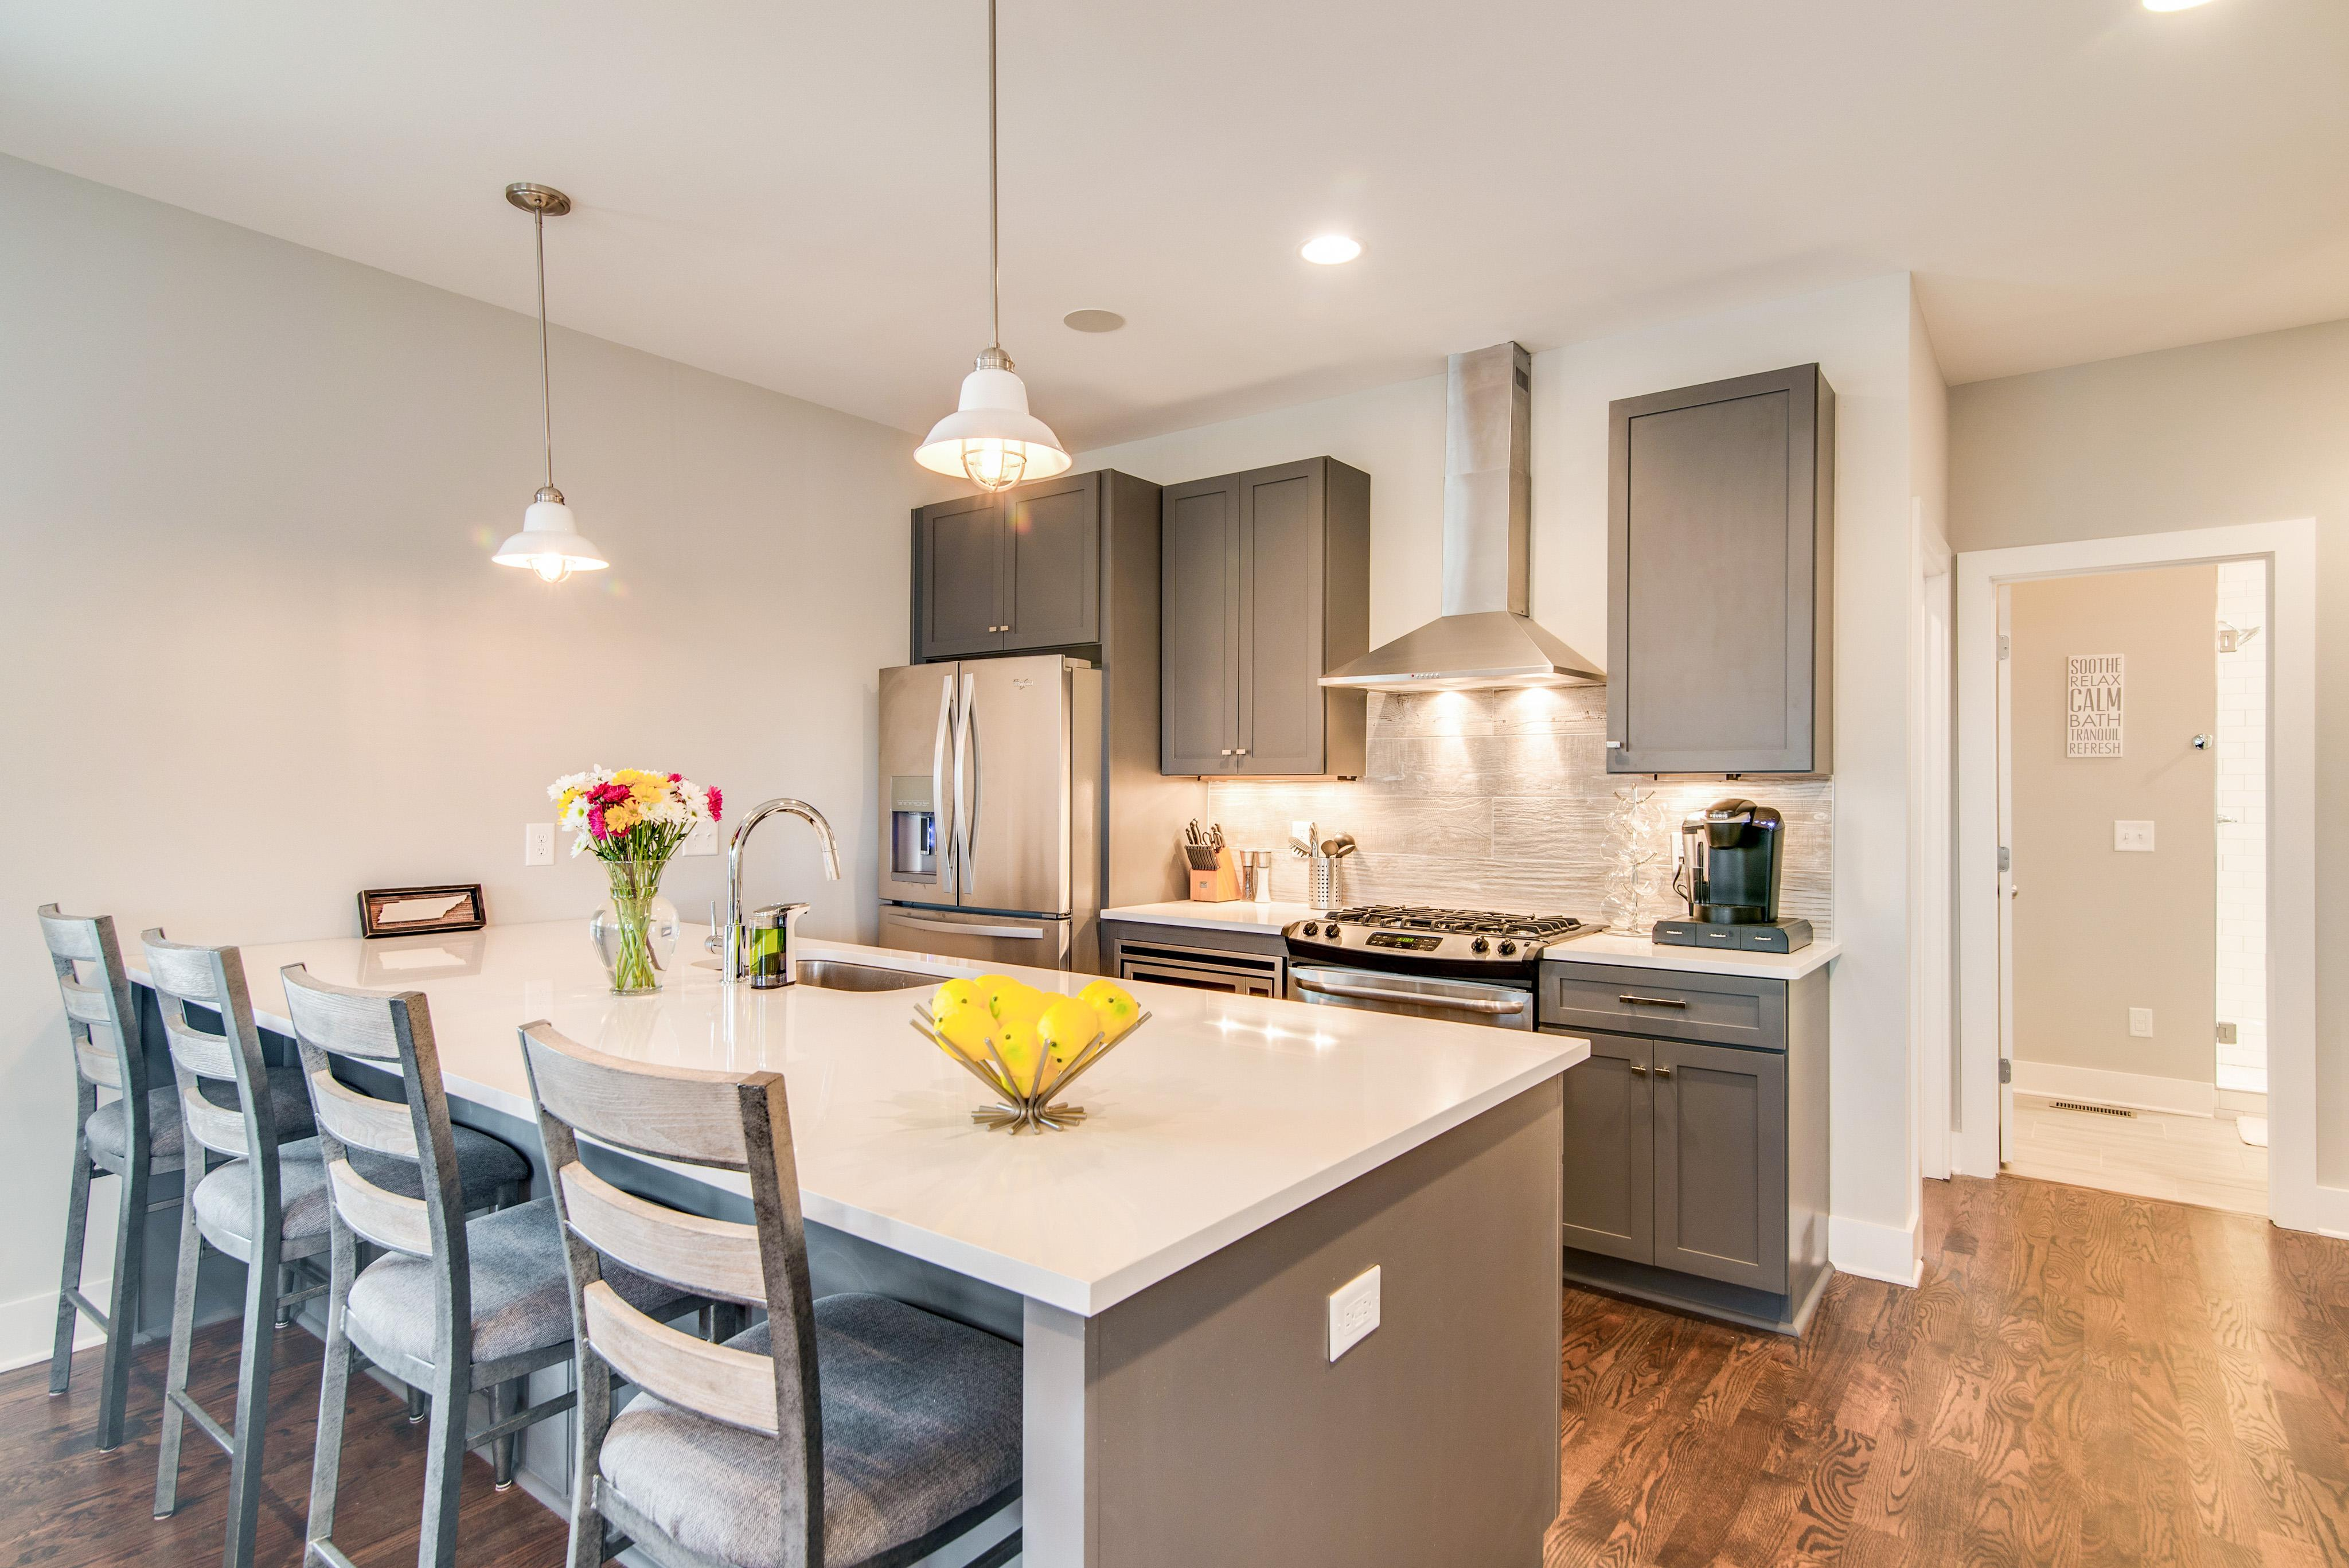 Channel your inner chef in the gourmet kitchen featuring white quartz counters and trendy grey cabinets